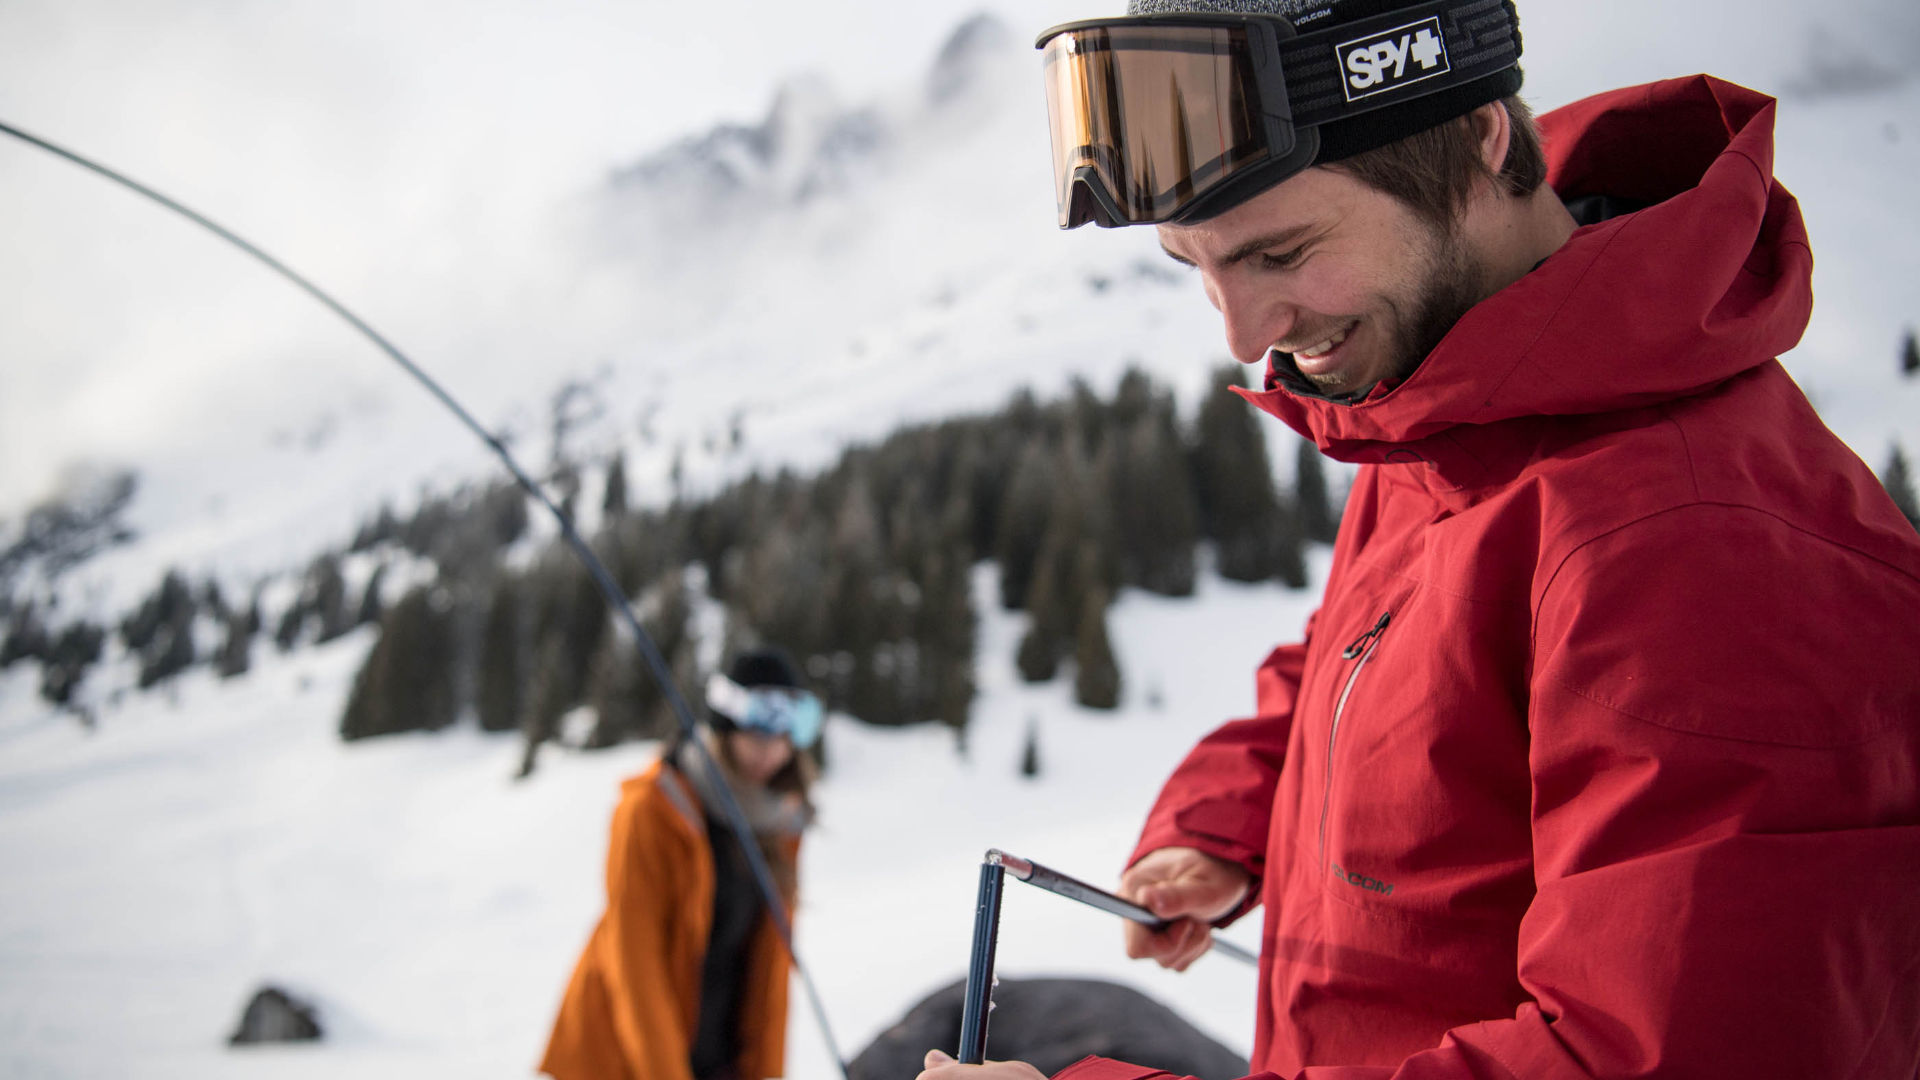 A male snowboarder wearing Medium Size Snowboard Goggles from SPY Optics